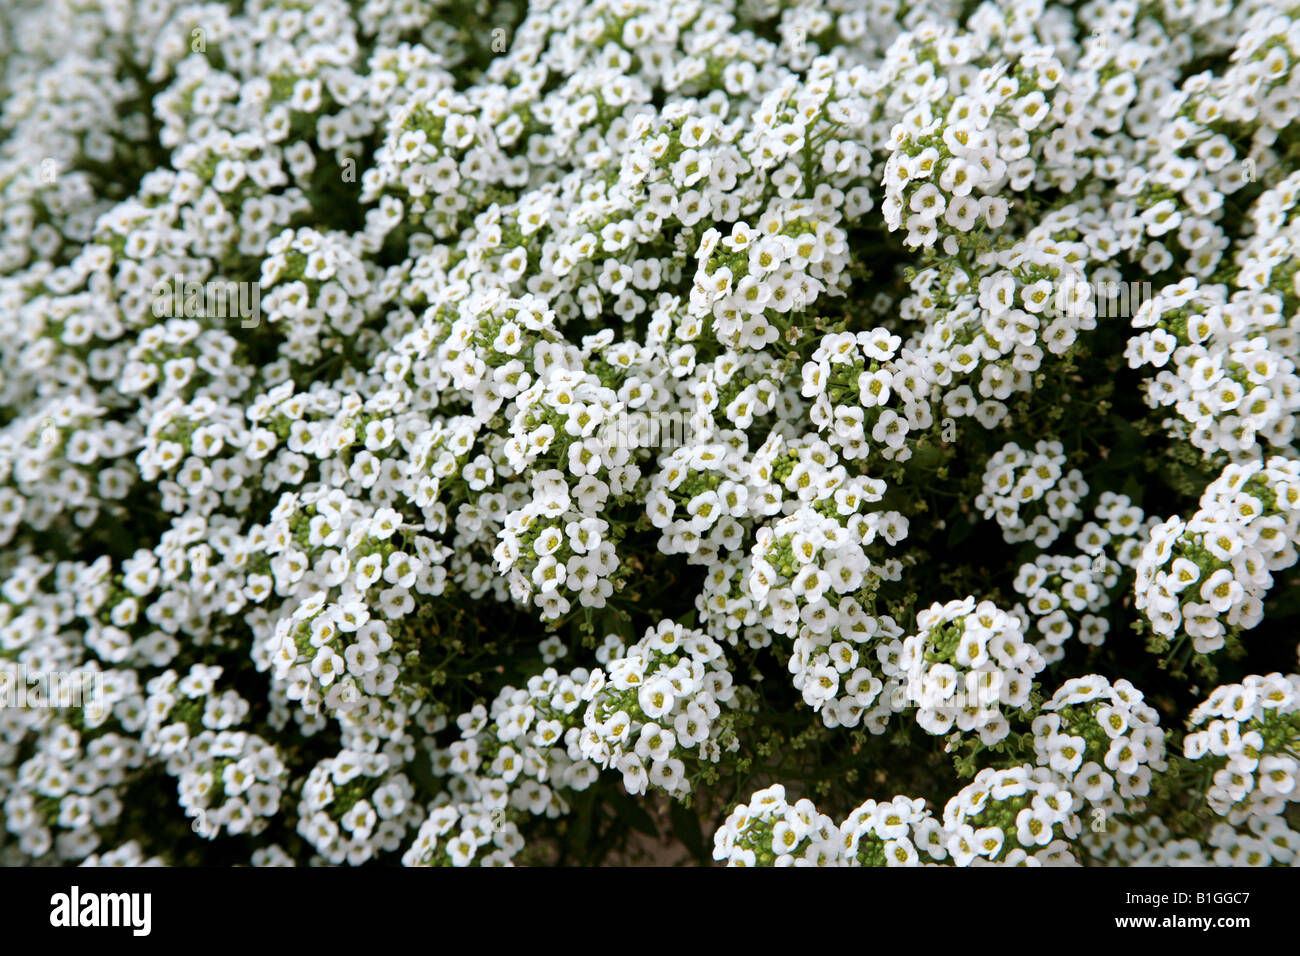 Small White Flowers In A Garden In Central Florida Stock Photo